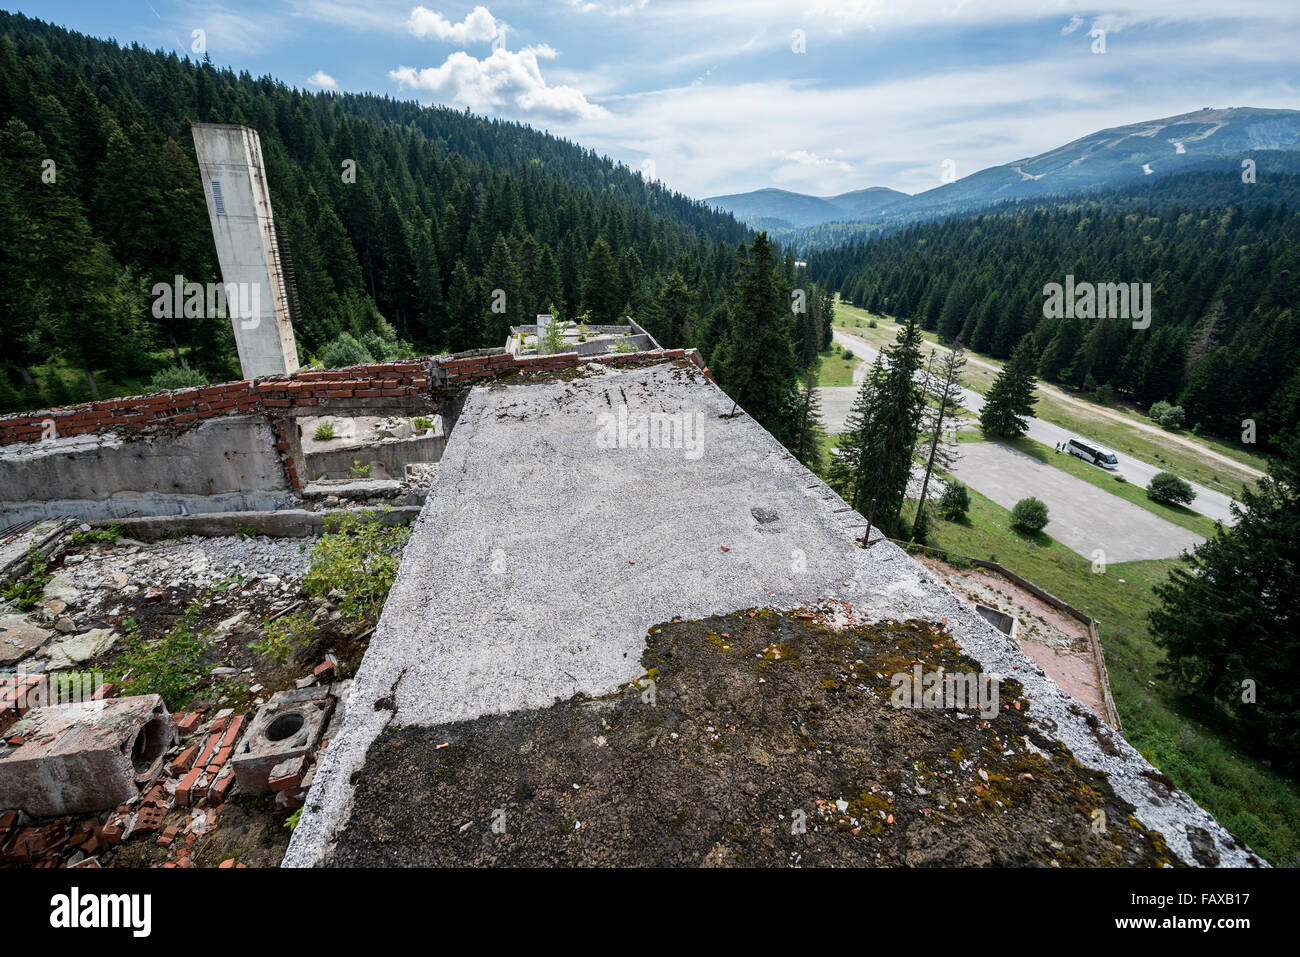 on the roof of ruined Igman Hotel near Igman Olympic Jumps, destroyed during Bosnian War in Bosnia and Herzegovina - Stock Image